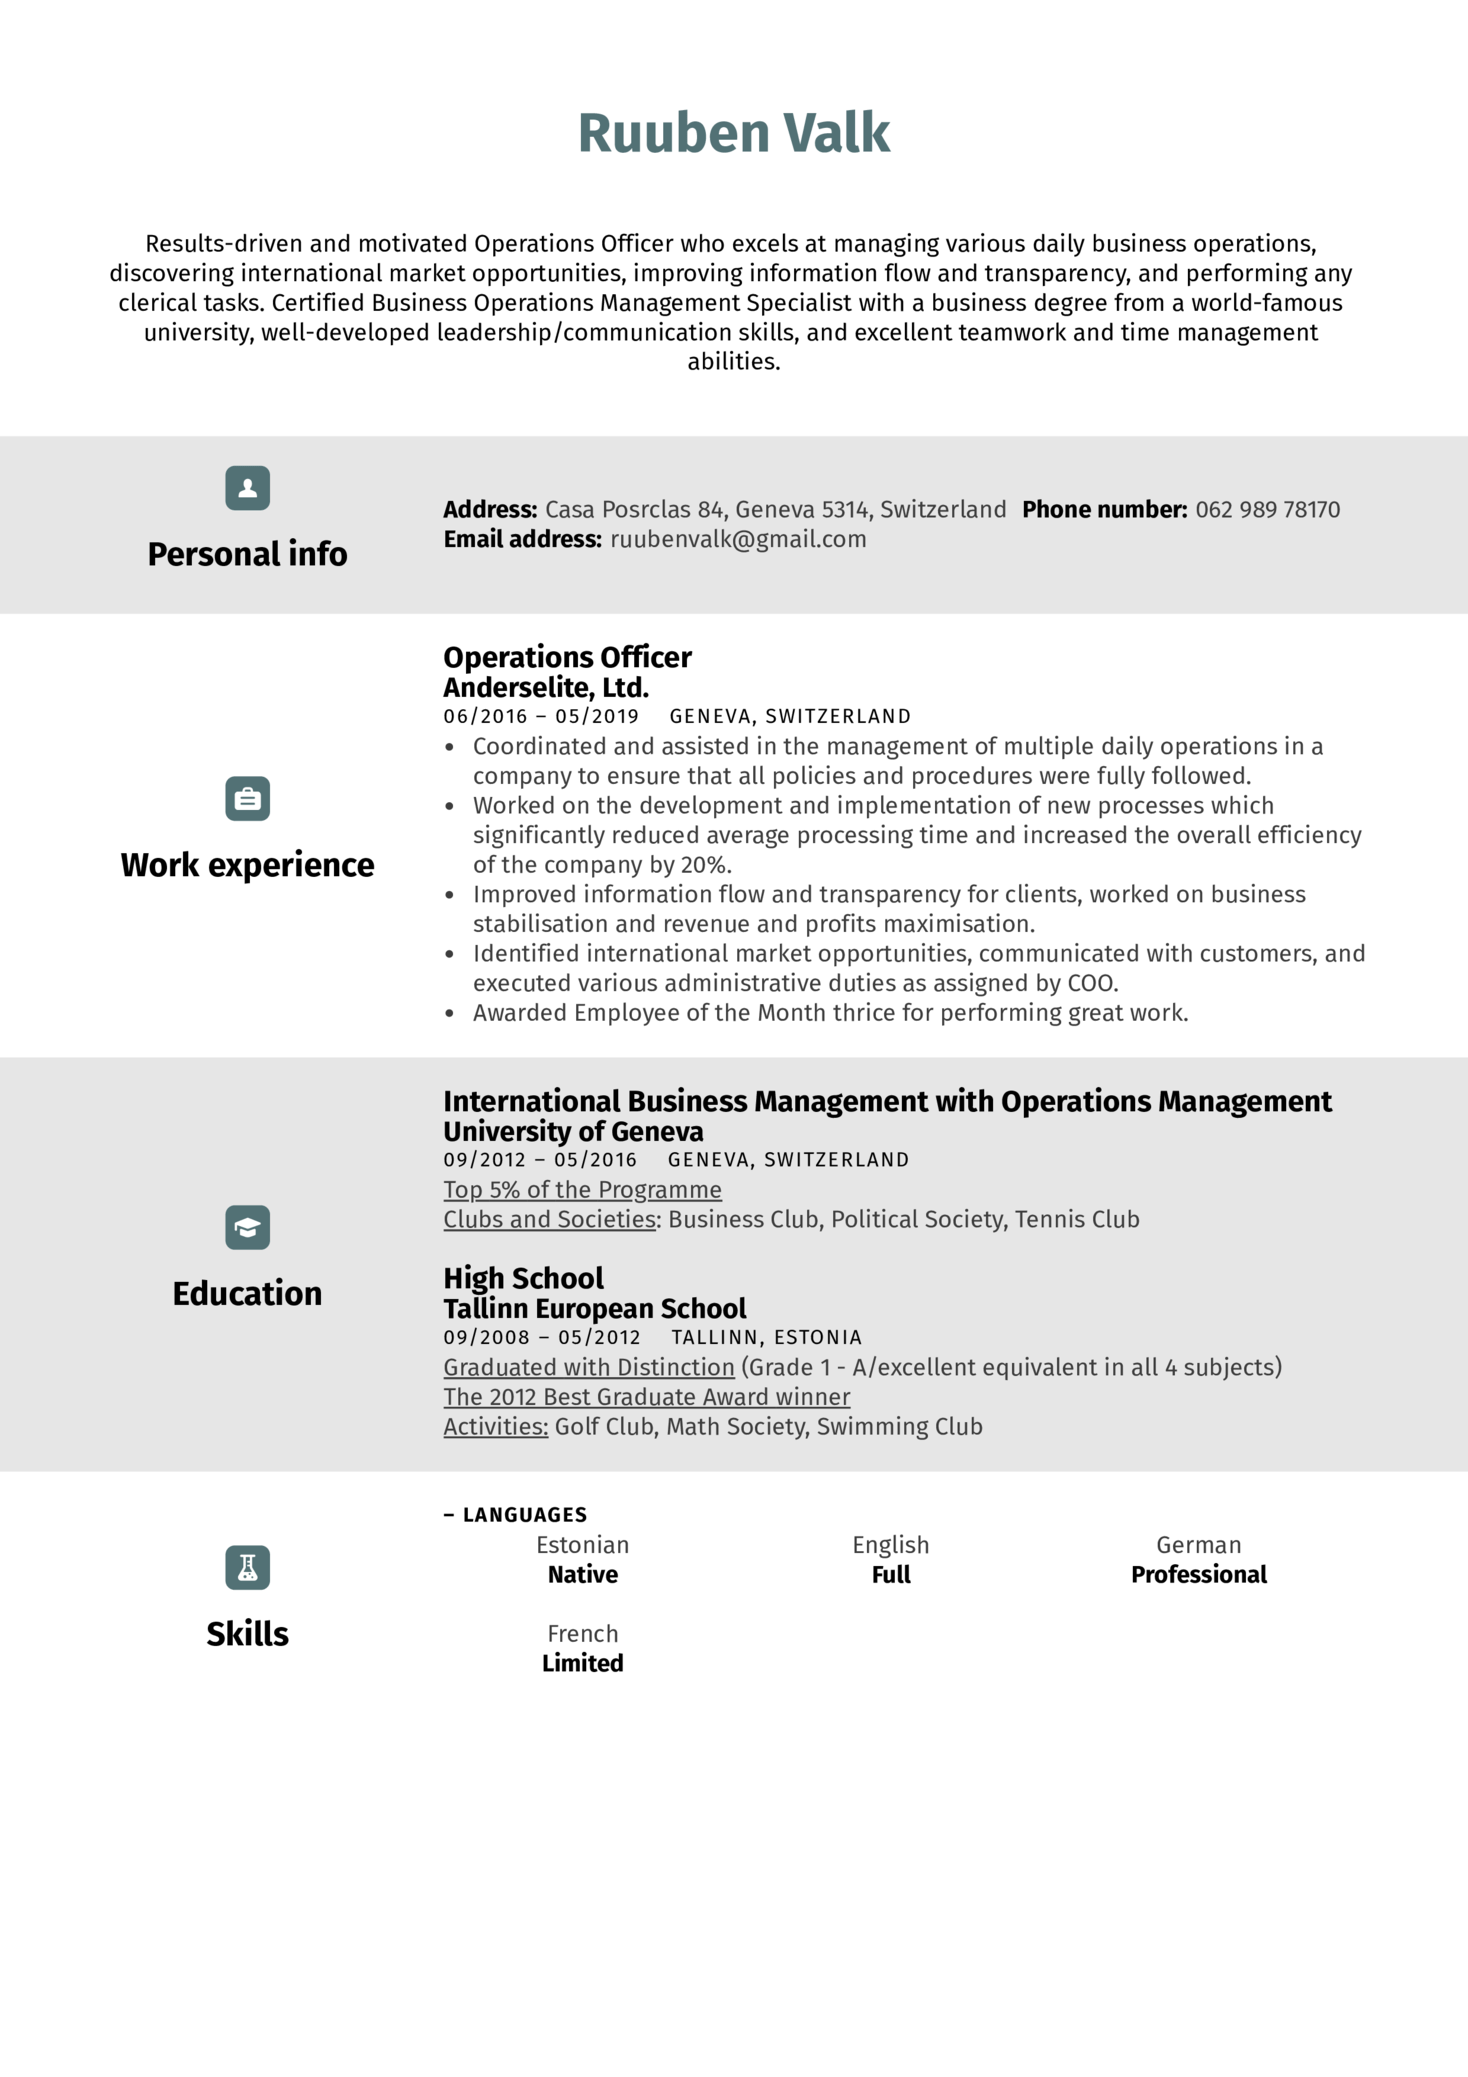 Operations Officer Resume Sample (Parte 1)